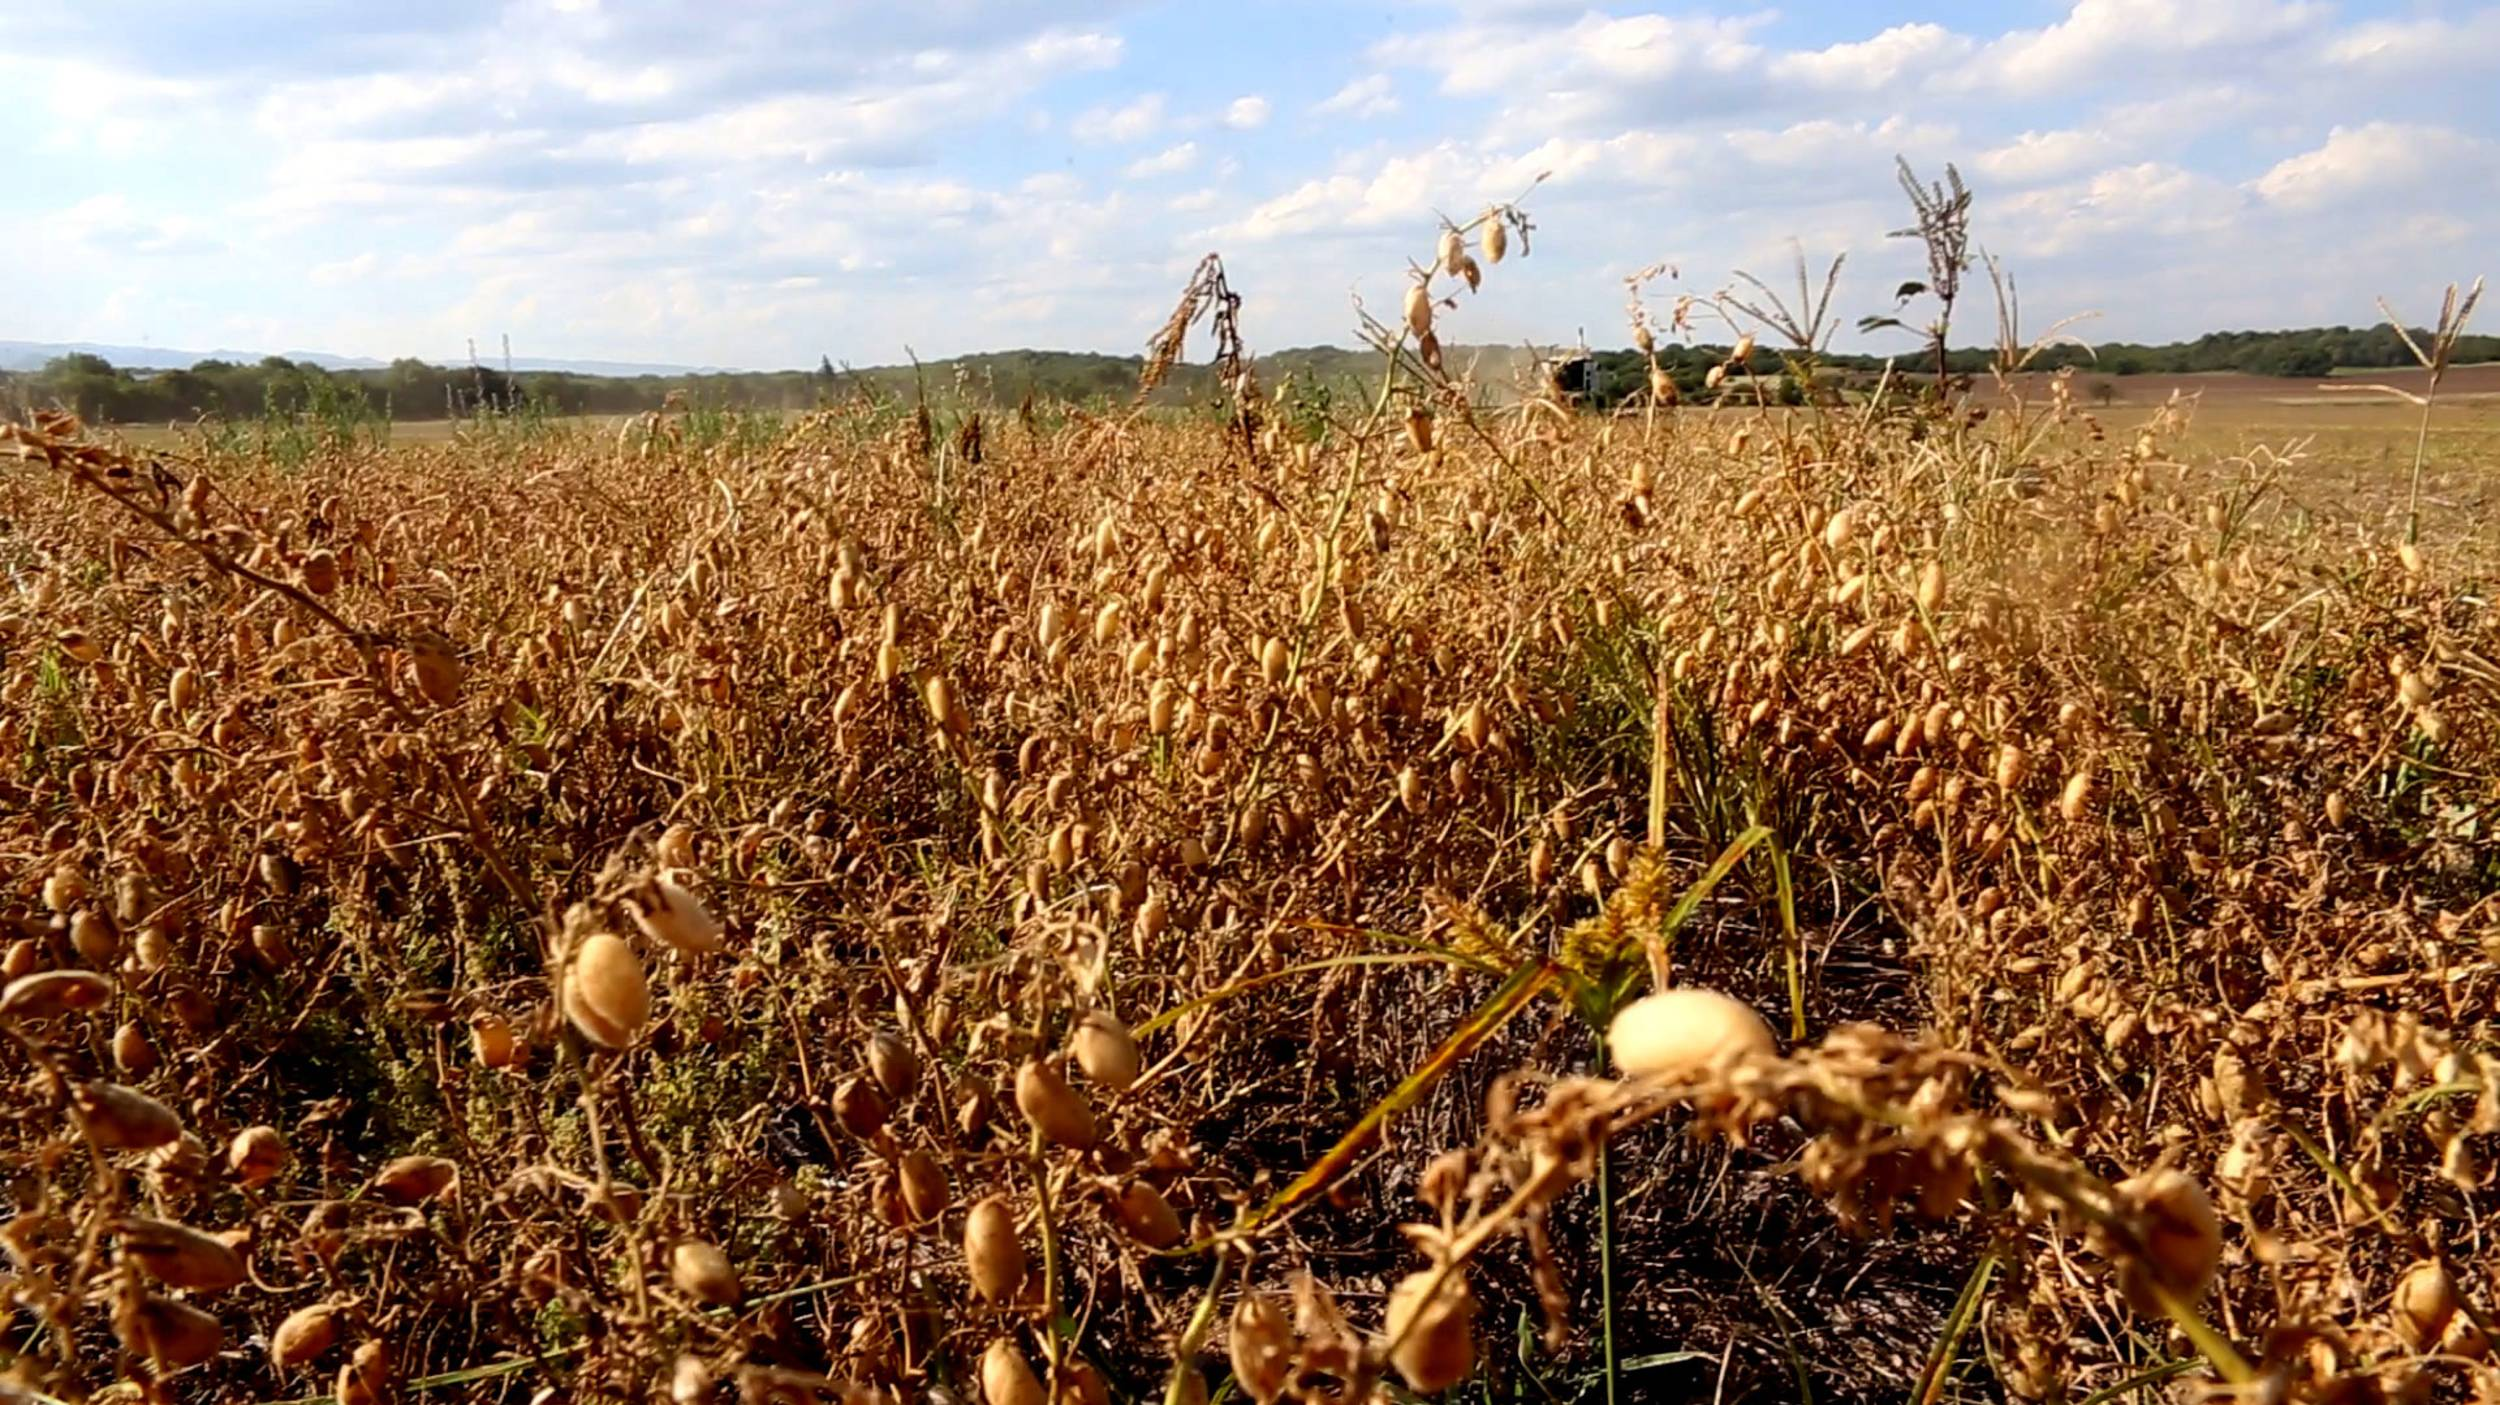 In the fertile north of Argentina, the conditions for growing chickpeas are ideal.